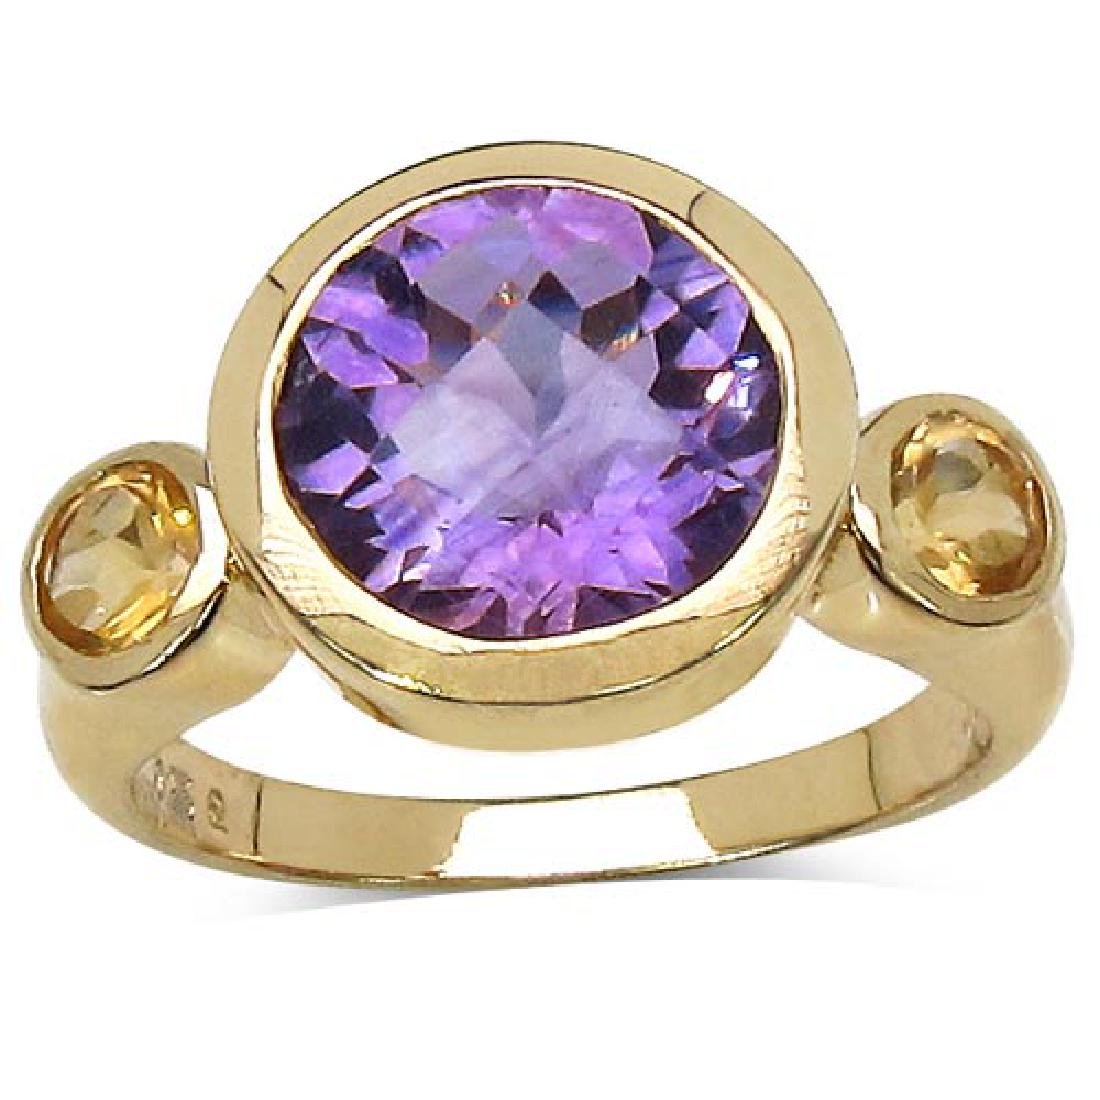 14K Yellow Gold Plated 3.90 Carat Genuine Amethyst & Ci